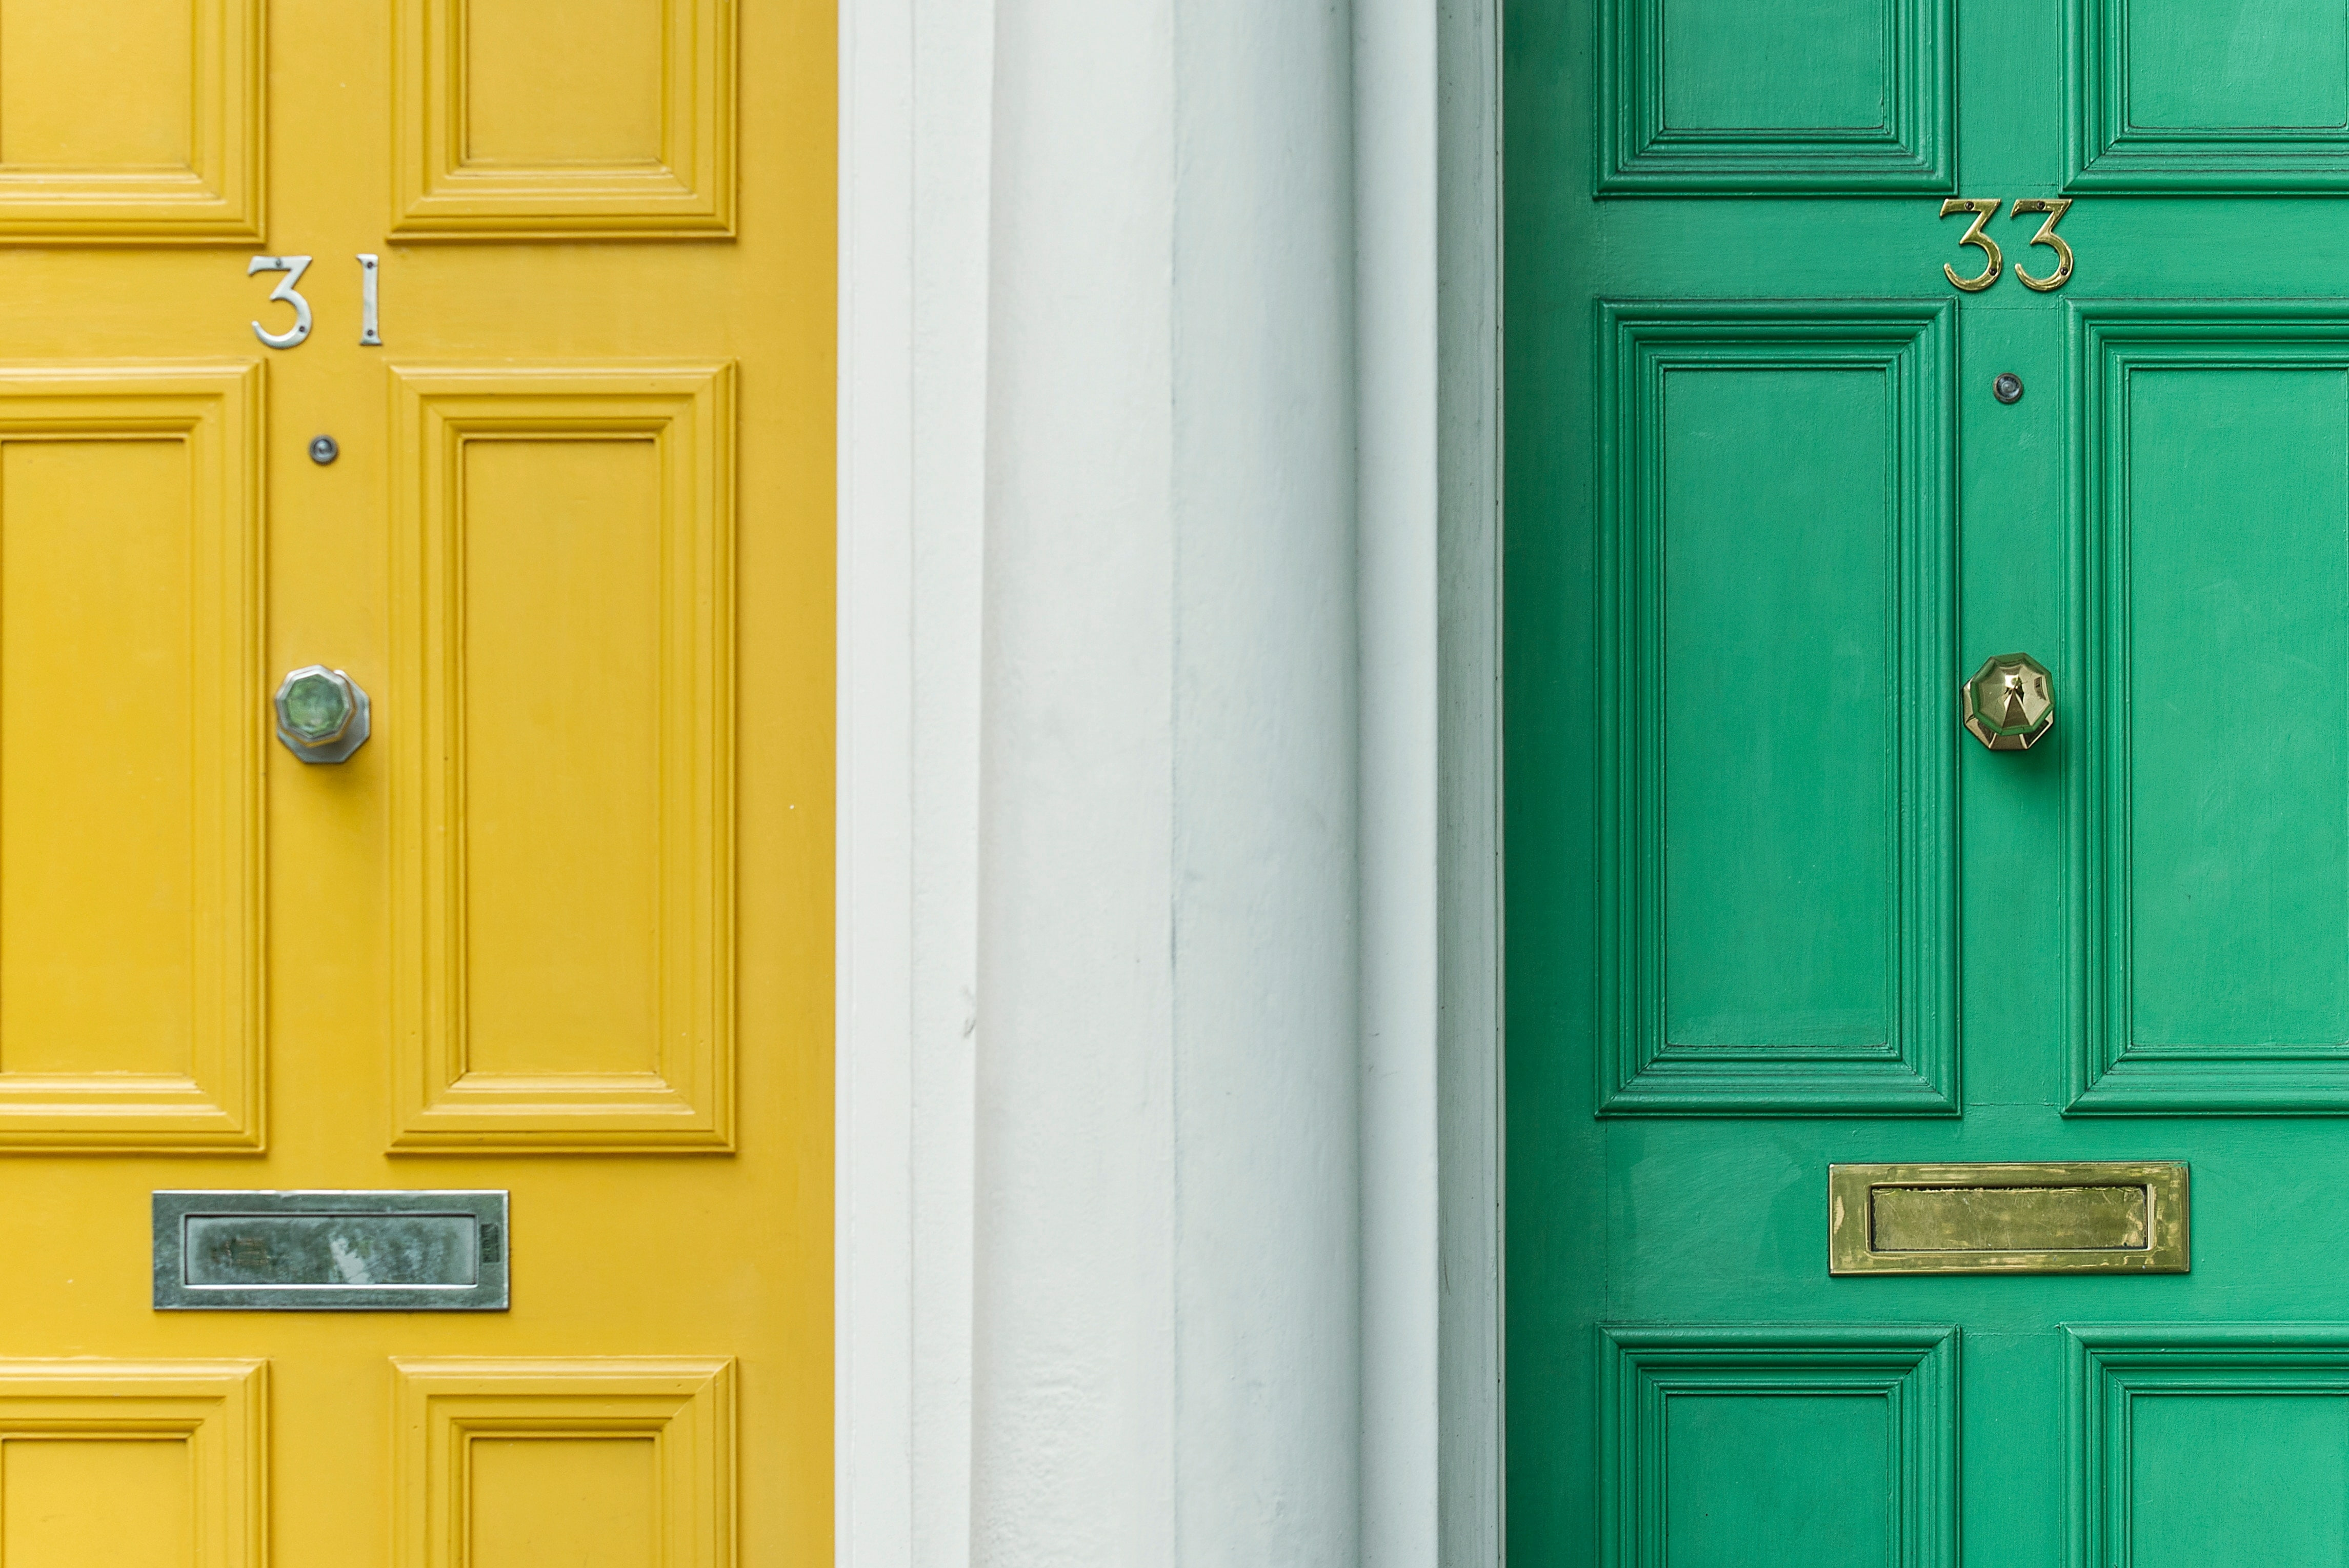 two different colored doors